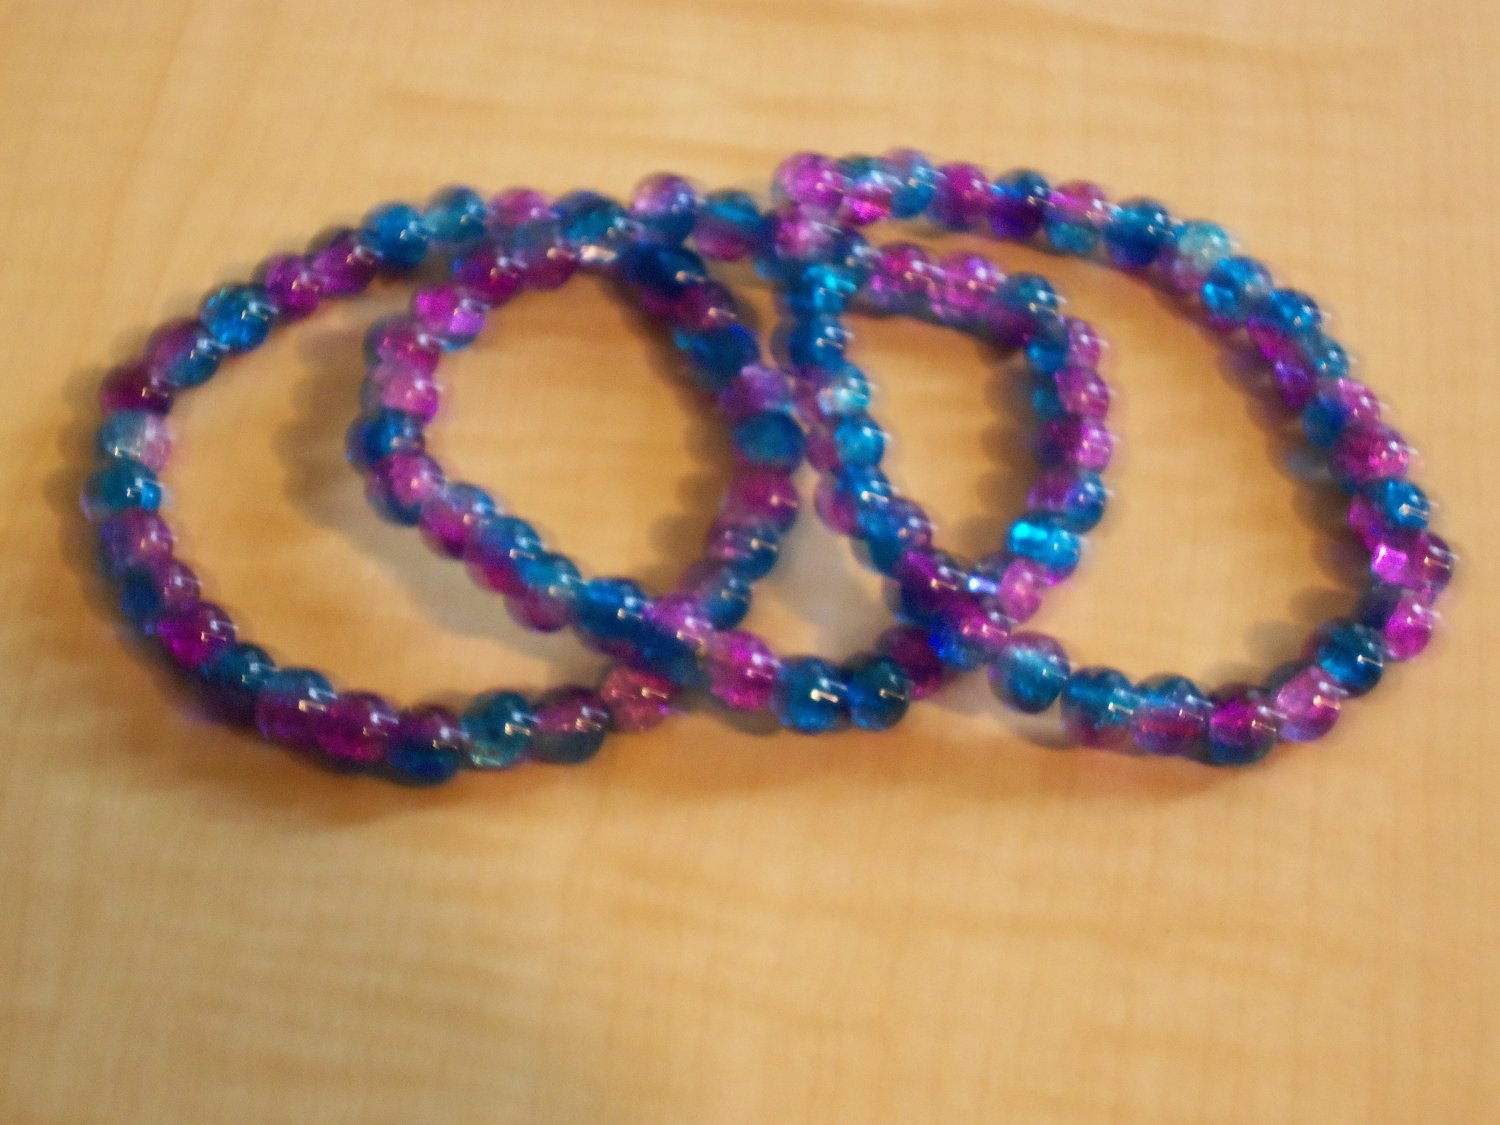 Purple and Blue Cracked Bead Bracelets